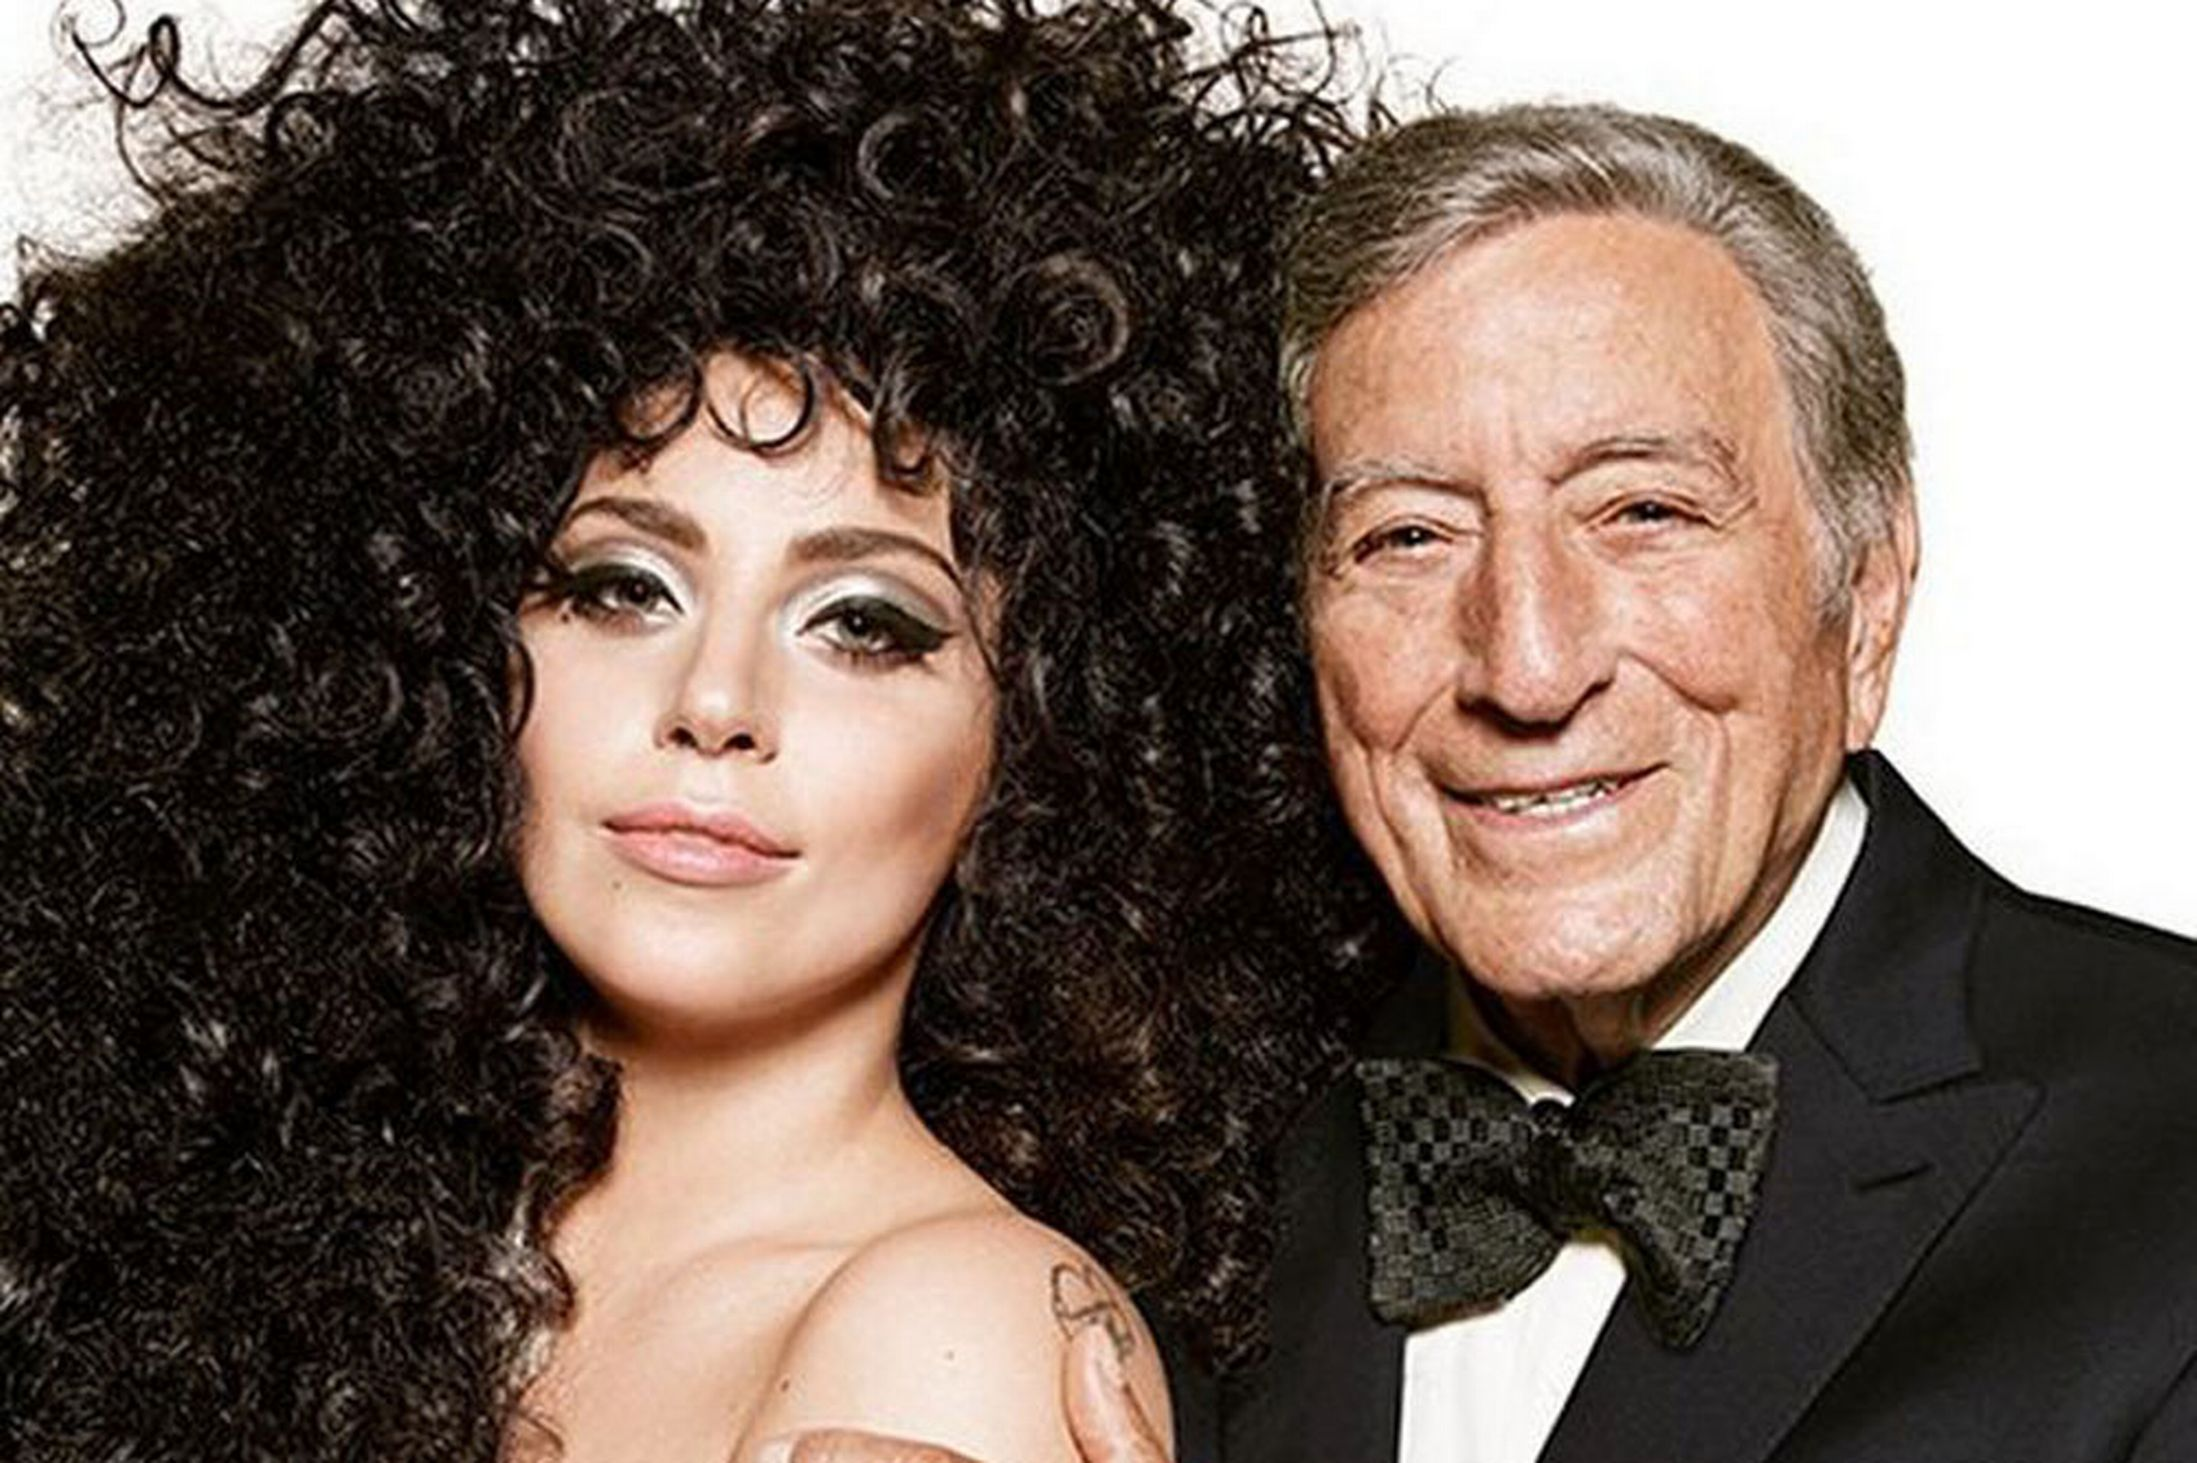 Tony Bennett: 90 anni e tanta energia, party a New York